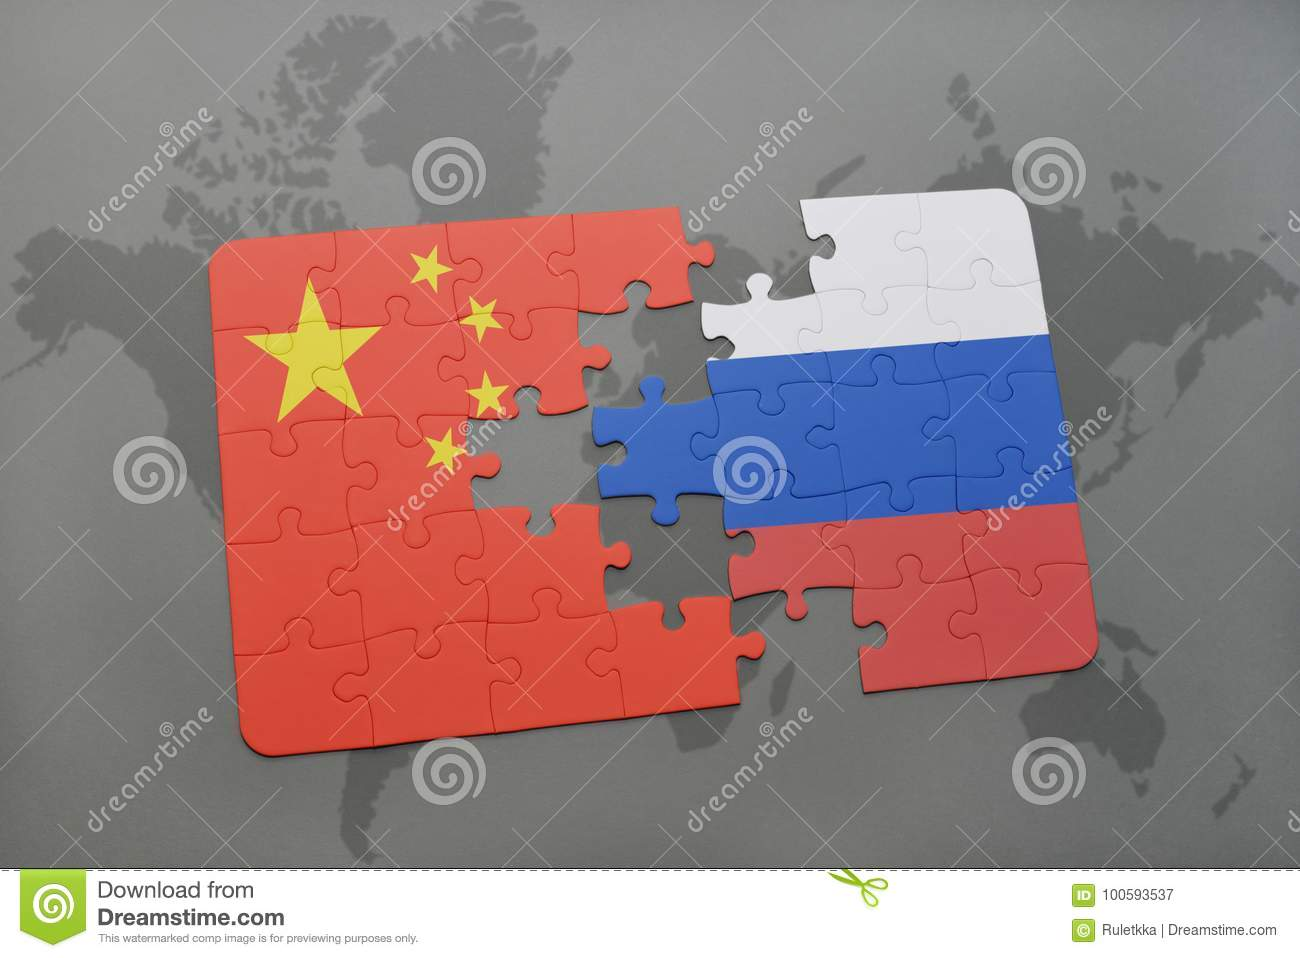 Puzzle with the national flag of china and russia on a world map download puzzle with the national flag of china and russia on a world map background gumiabroncs Choice Image